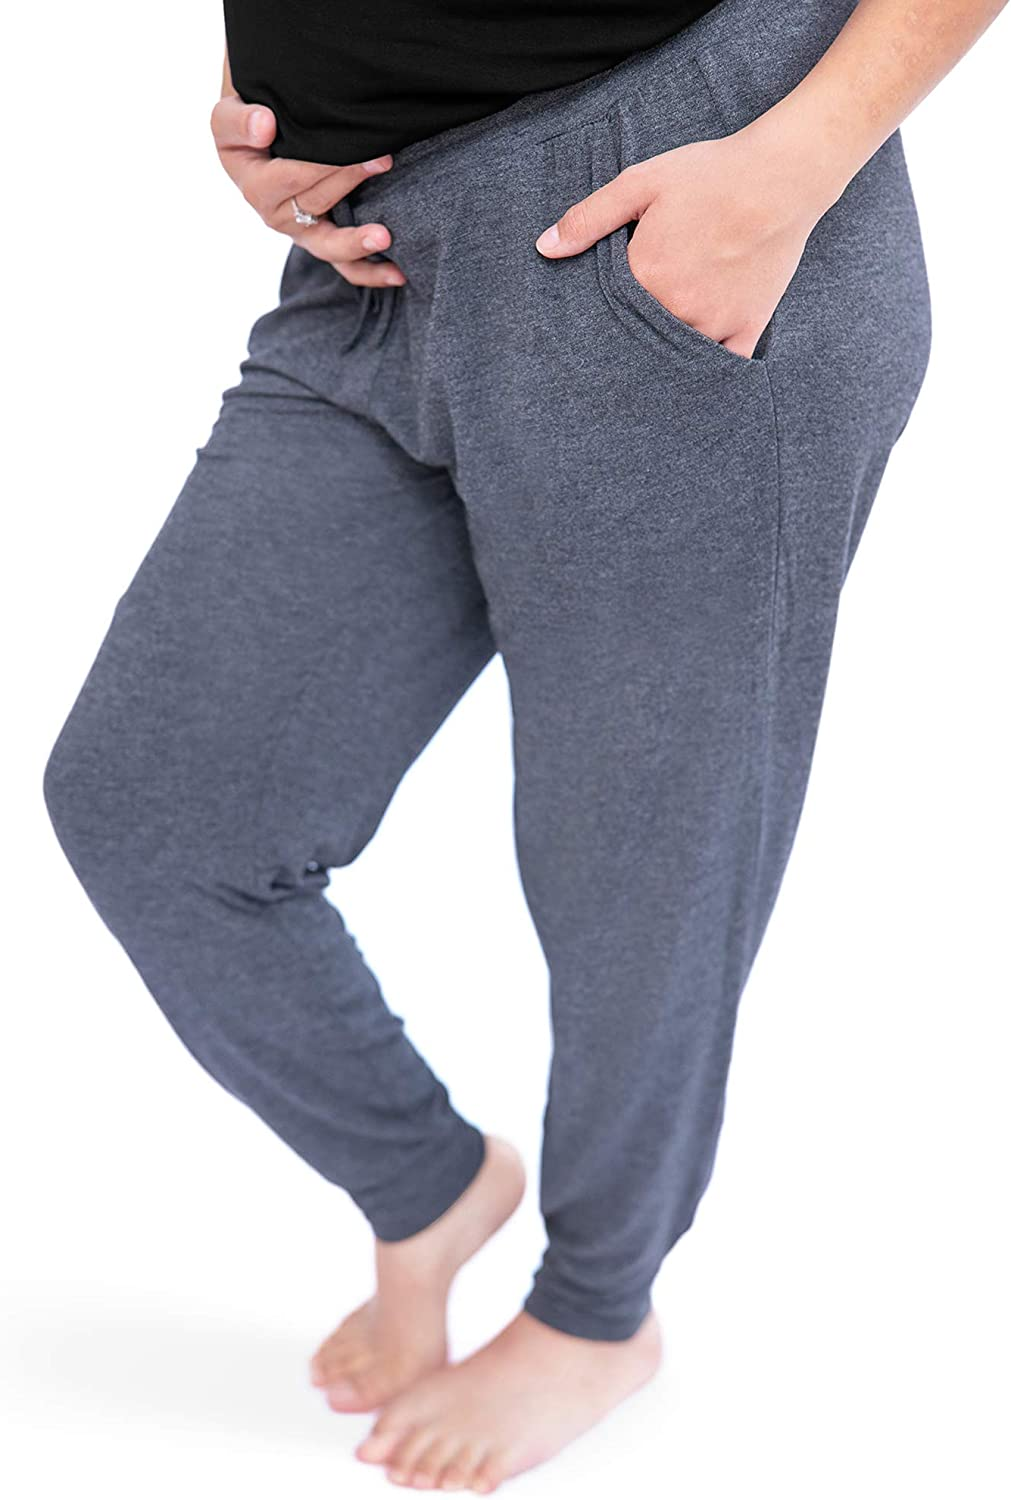 Kindred Bravely Everyday Maternity Joggers/Lounge Pants for Women